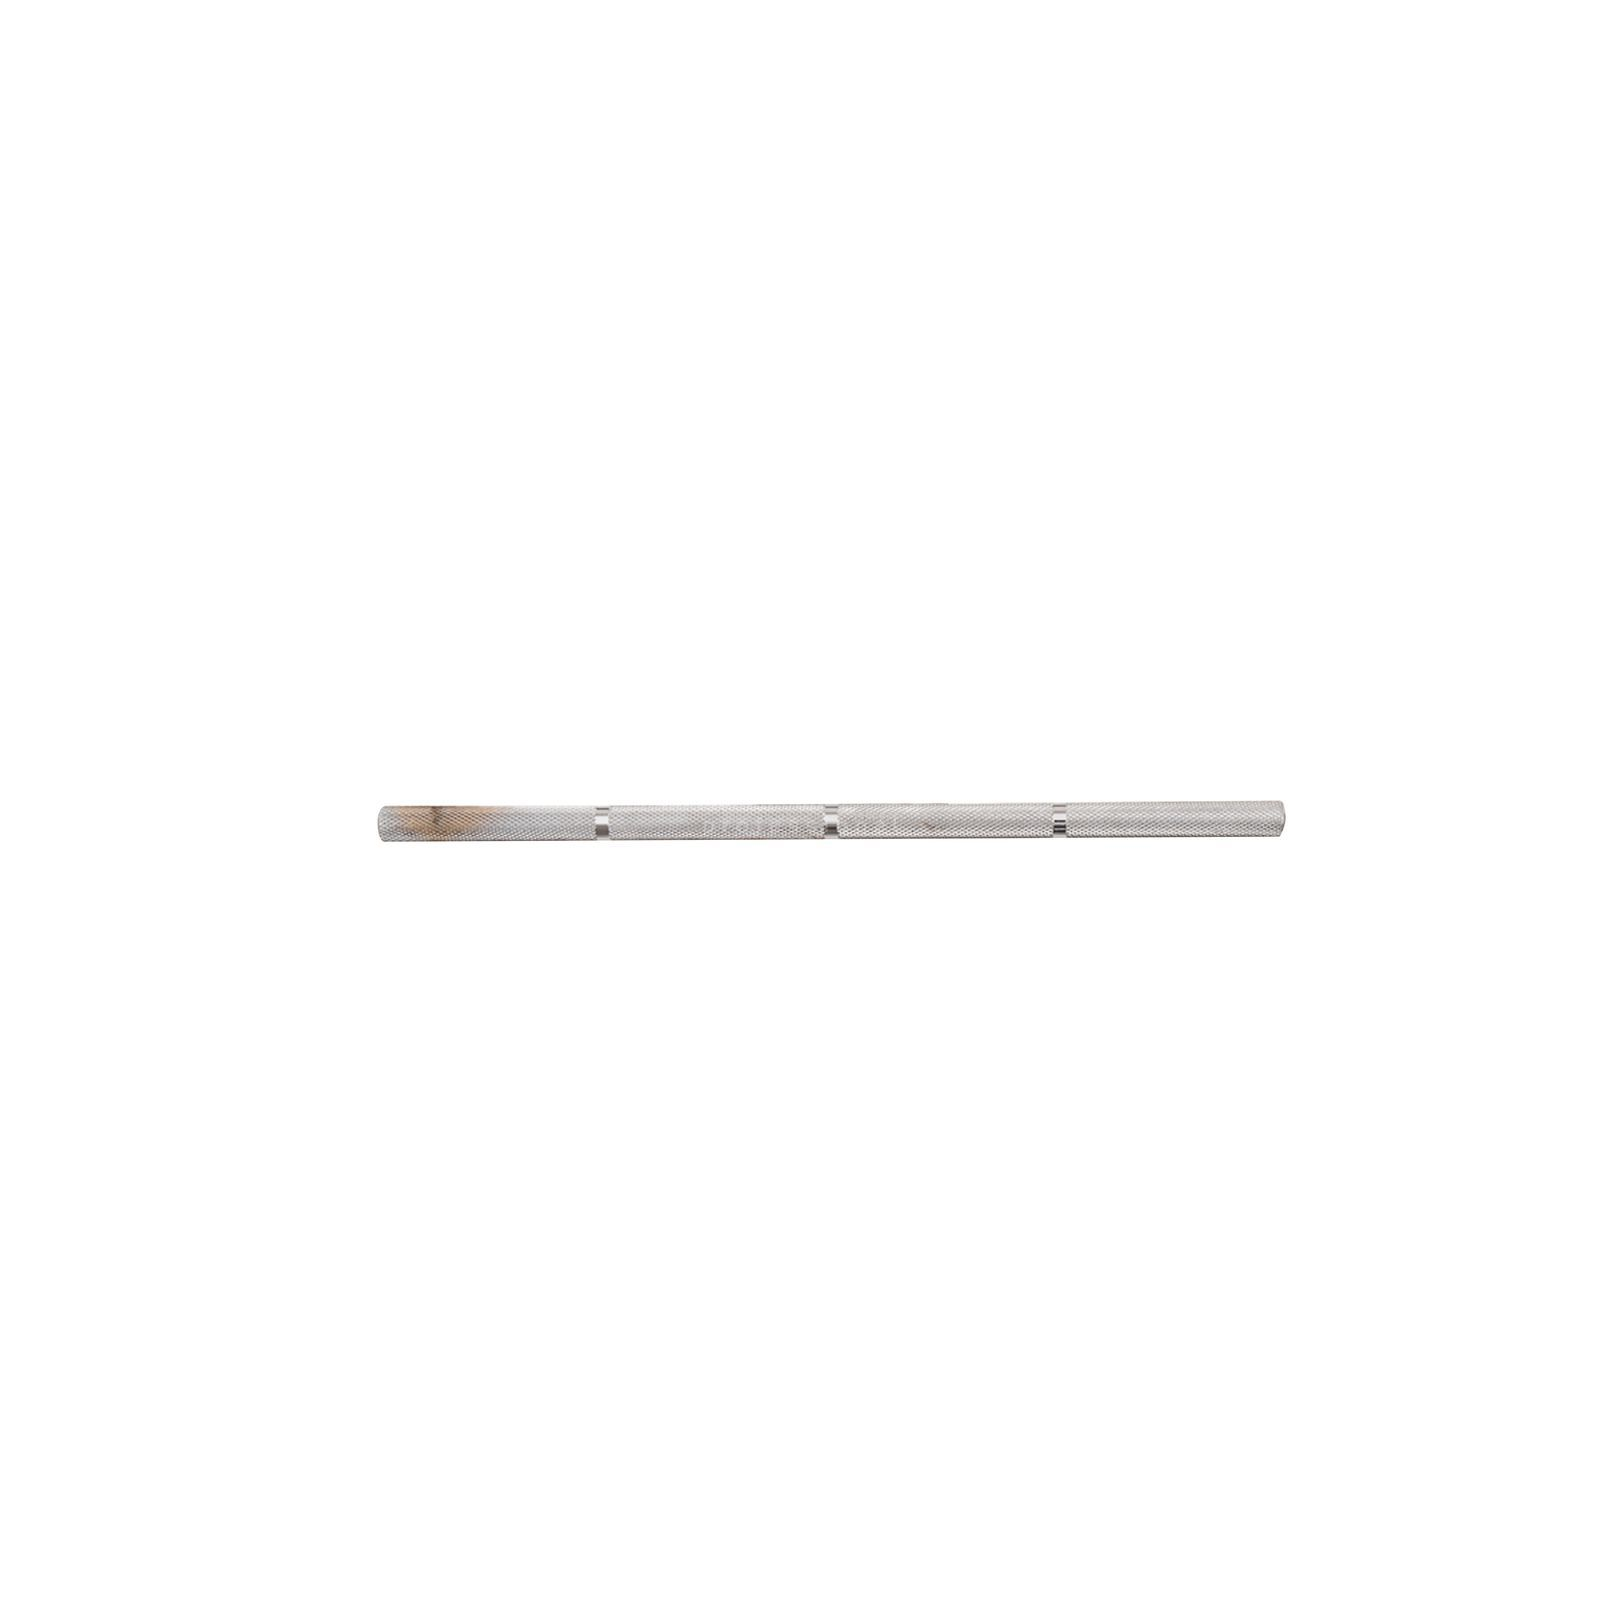 "Ludwig Accessory Rod 12"" LAP12RD, 12,7mm Produktbild"